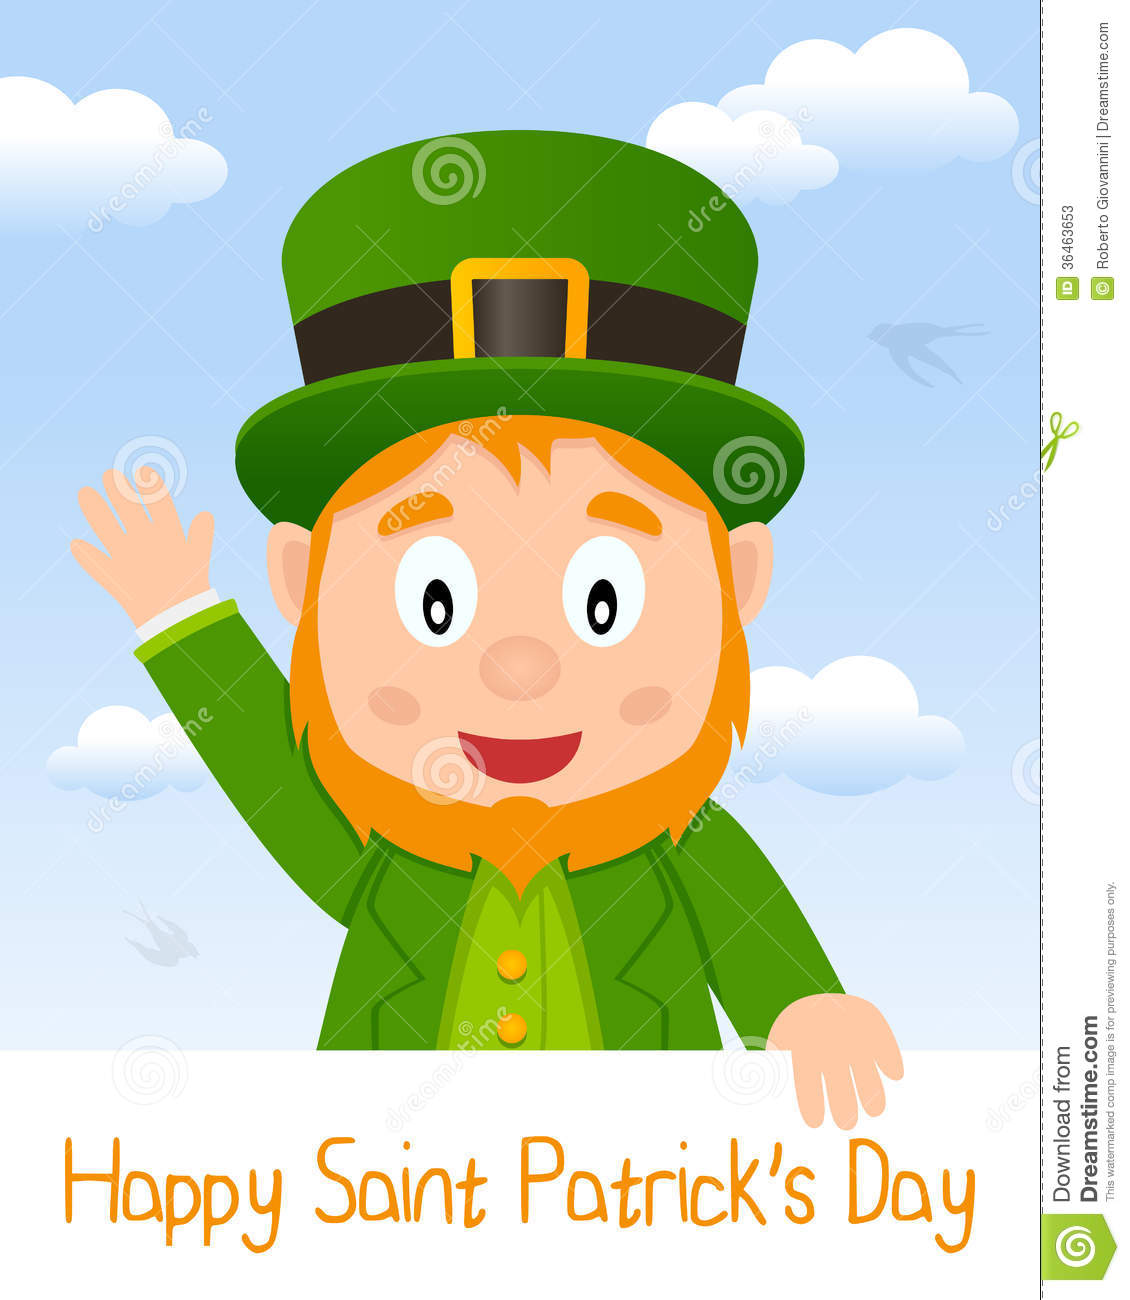 Happy St  Patricks Or Saint Patrick S Day Greeting Card With A Cartoon